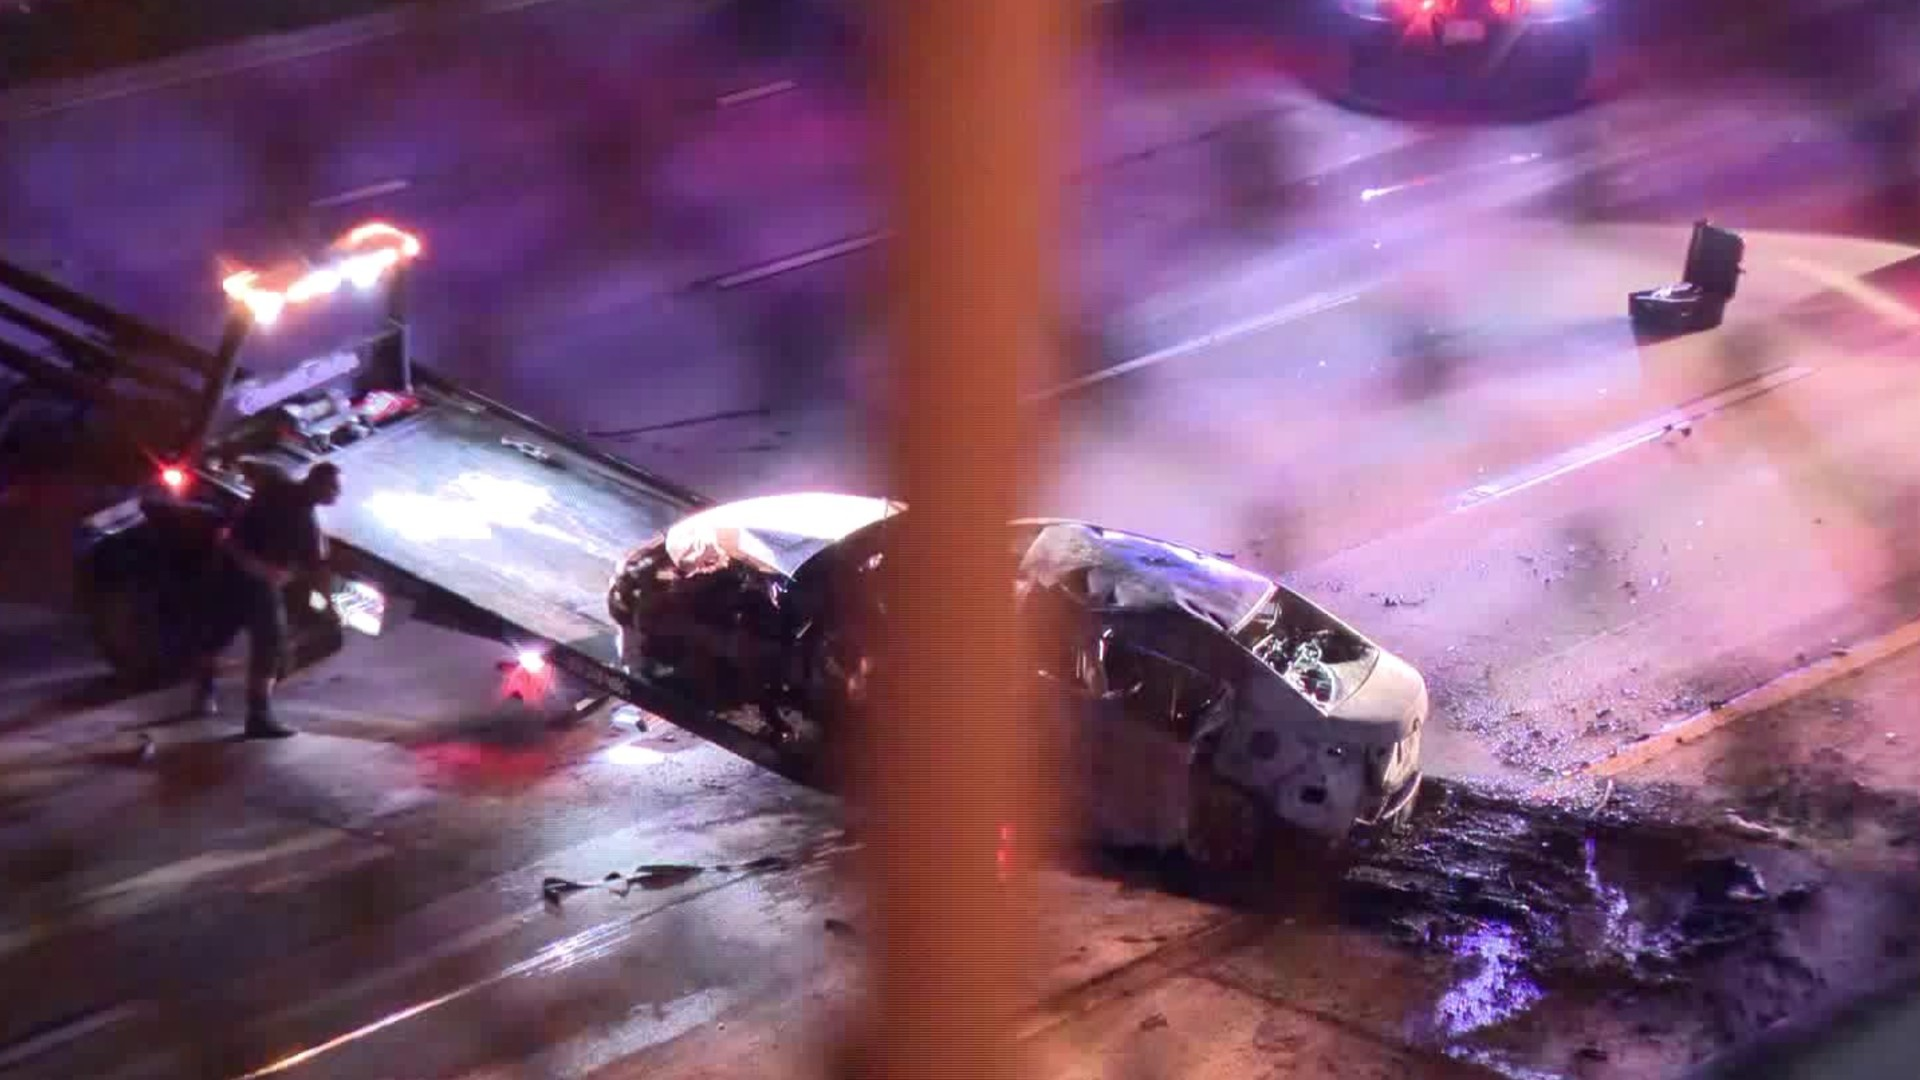 Crews respond to a fatal crash on the 210 Freeway in the La Crescenta-Montrose area on Aug. 3, 2020. (KTLA)